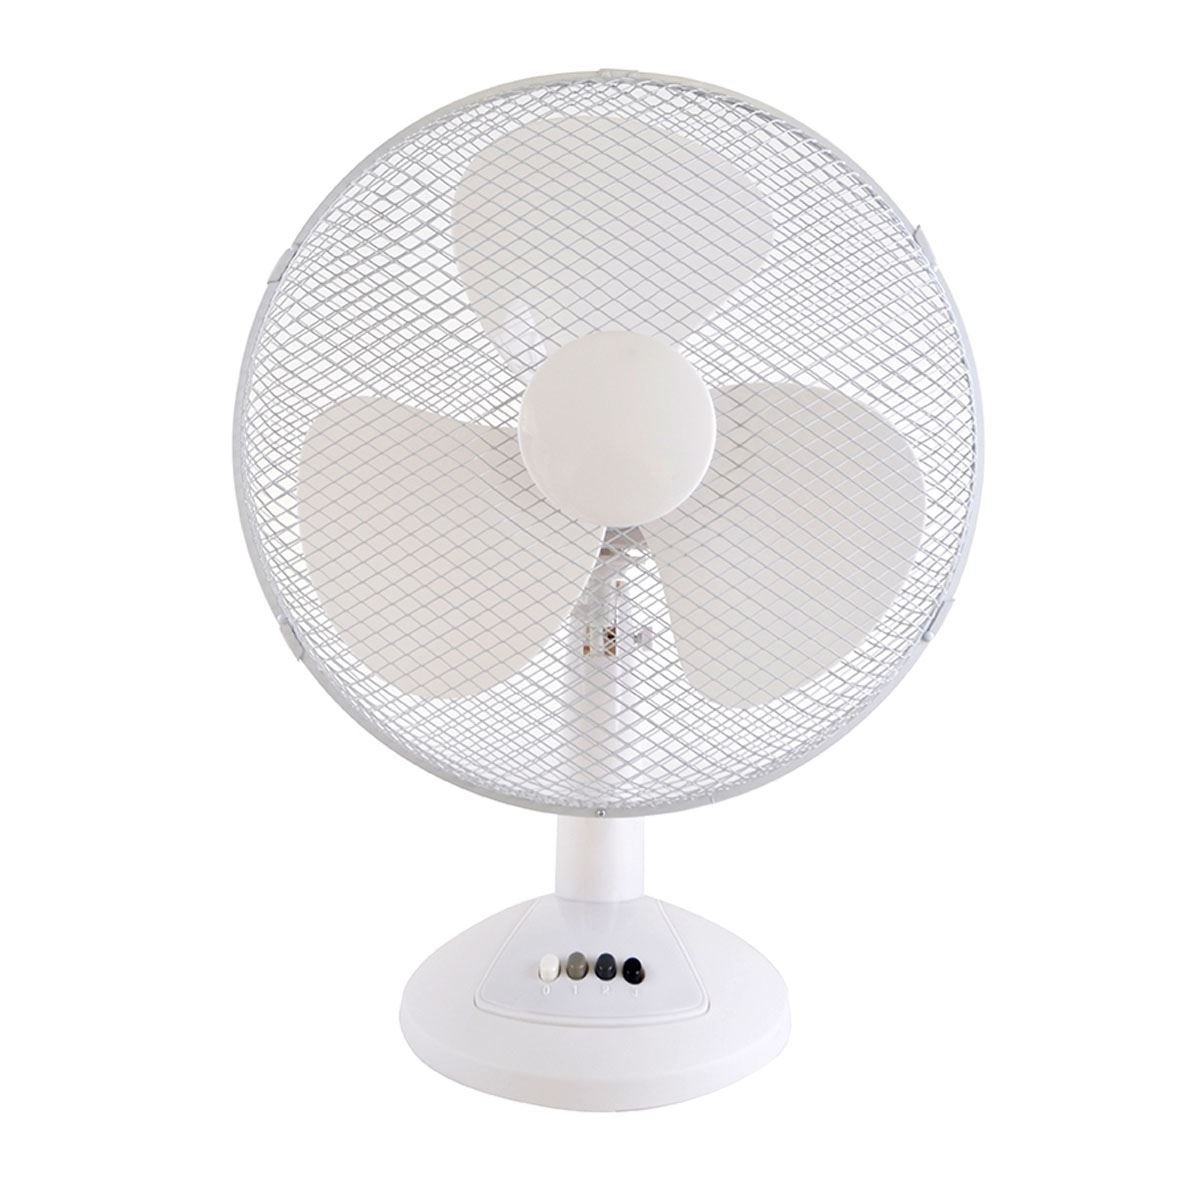 Lloytron F1021WH Stay Cool Desk Fan, 50 W, 40 cm, White